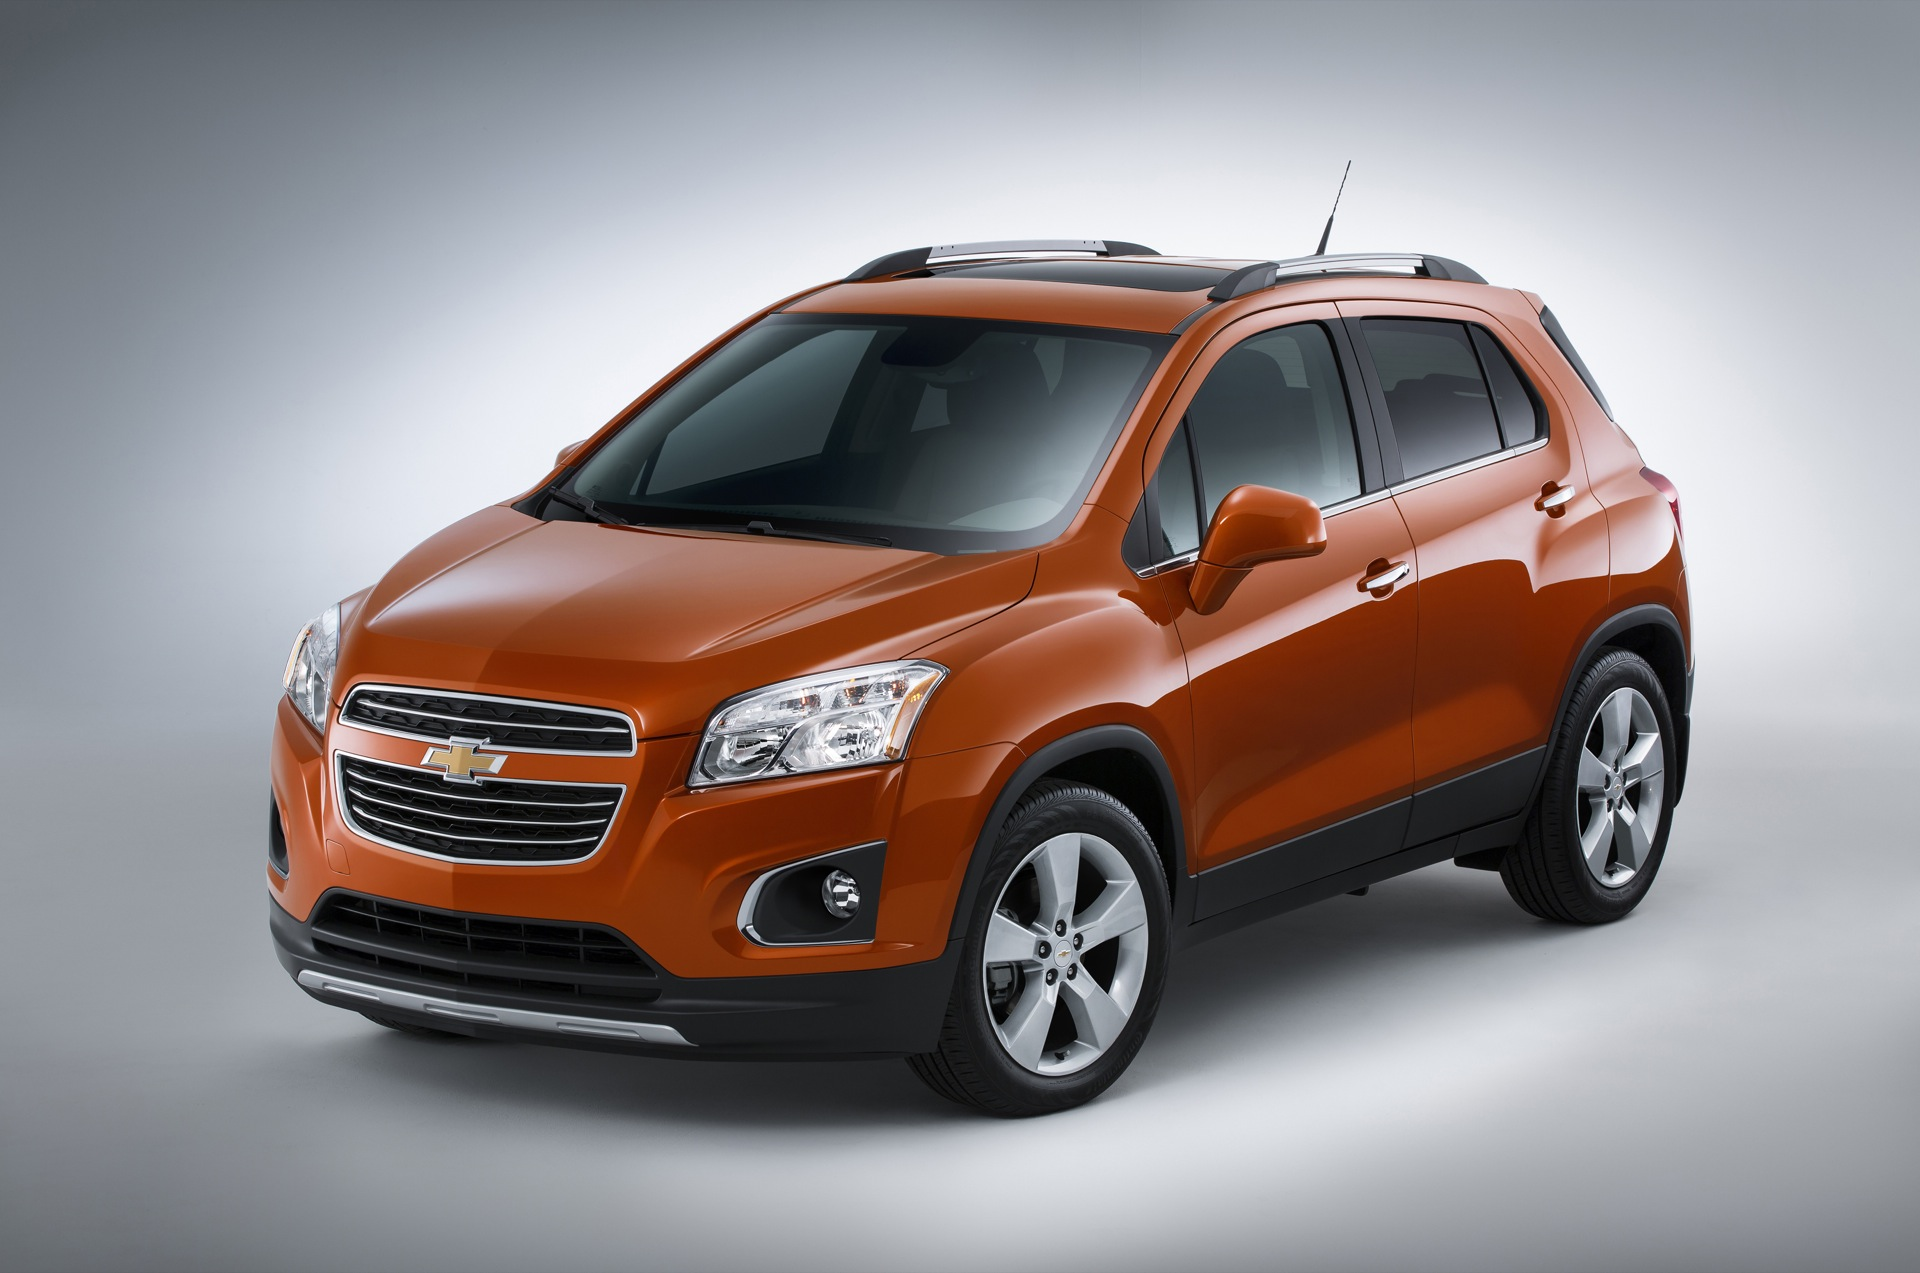 2015 Chevy Colorado Diesel Price 2015 Chevrolet Trax (Chevy) Review, Ratings, Specs, Prices ...